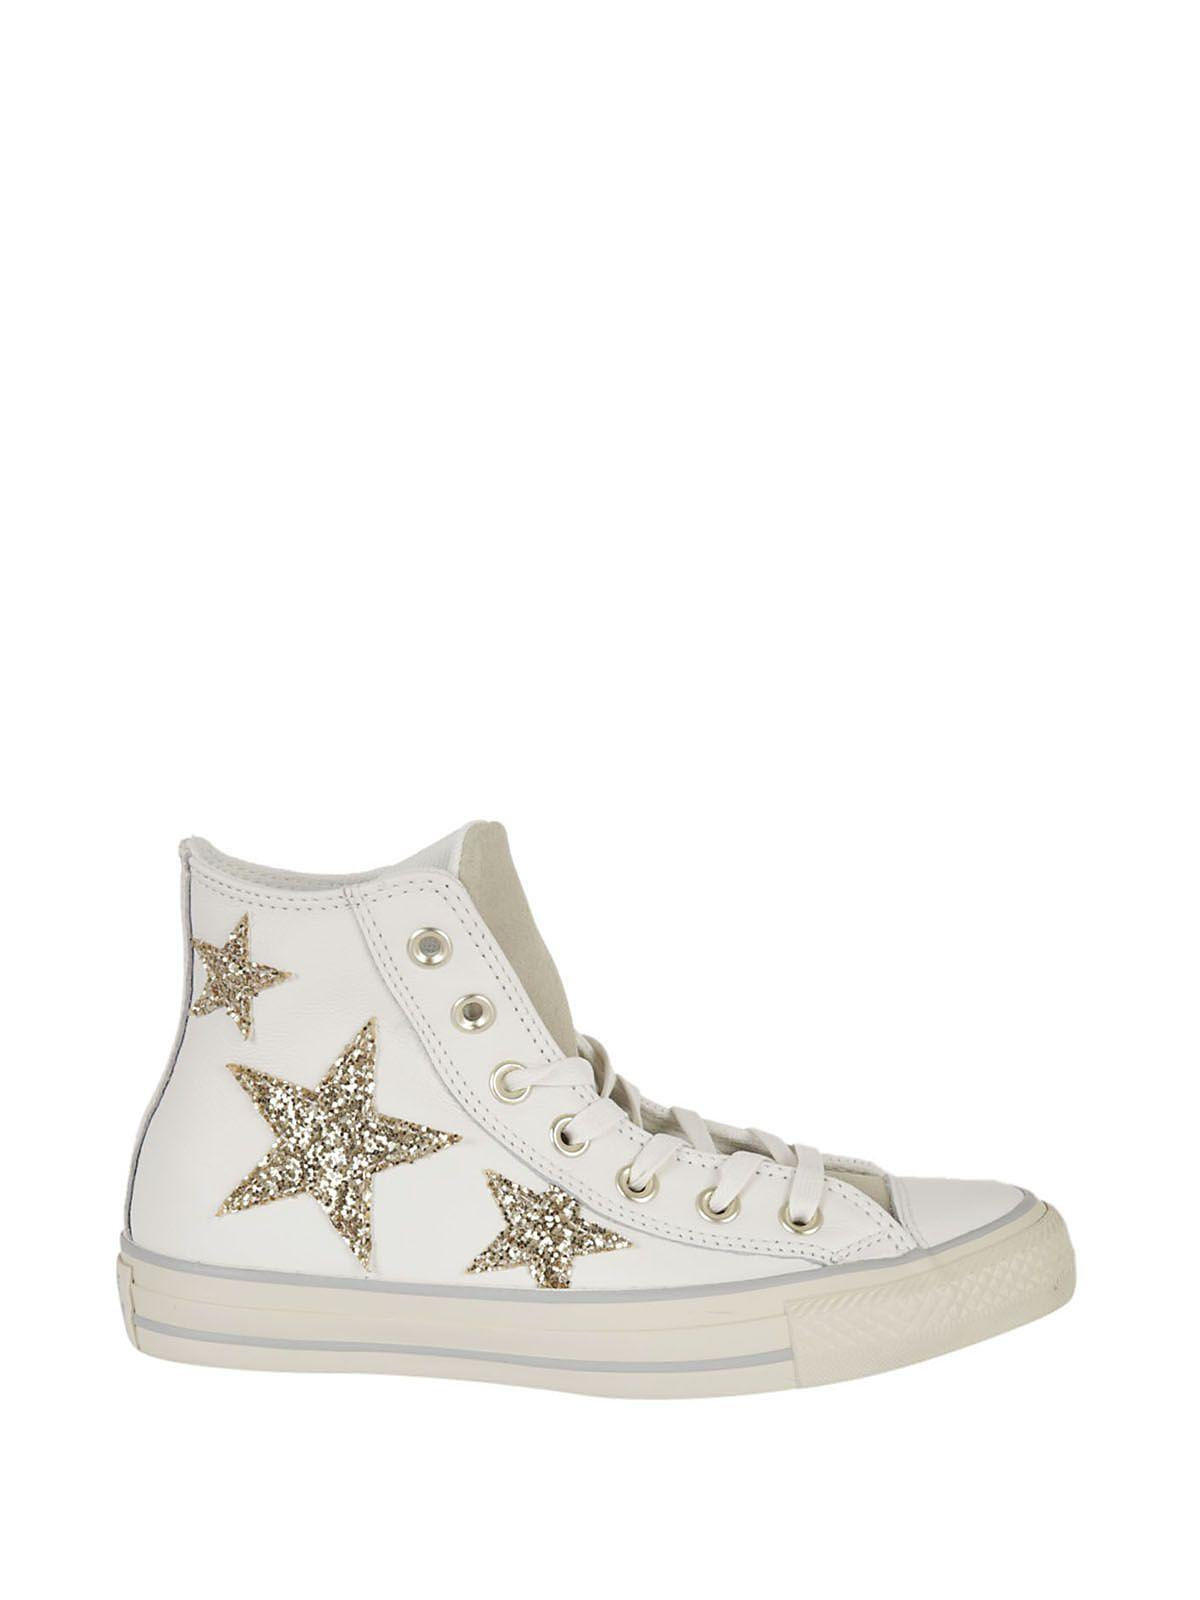 Chuck Taylor All Star High Curved Eyestay Hi Top Sneakers in Stelle